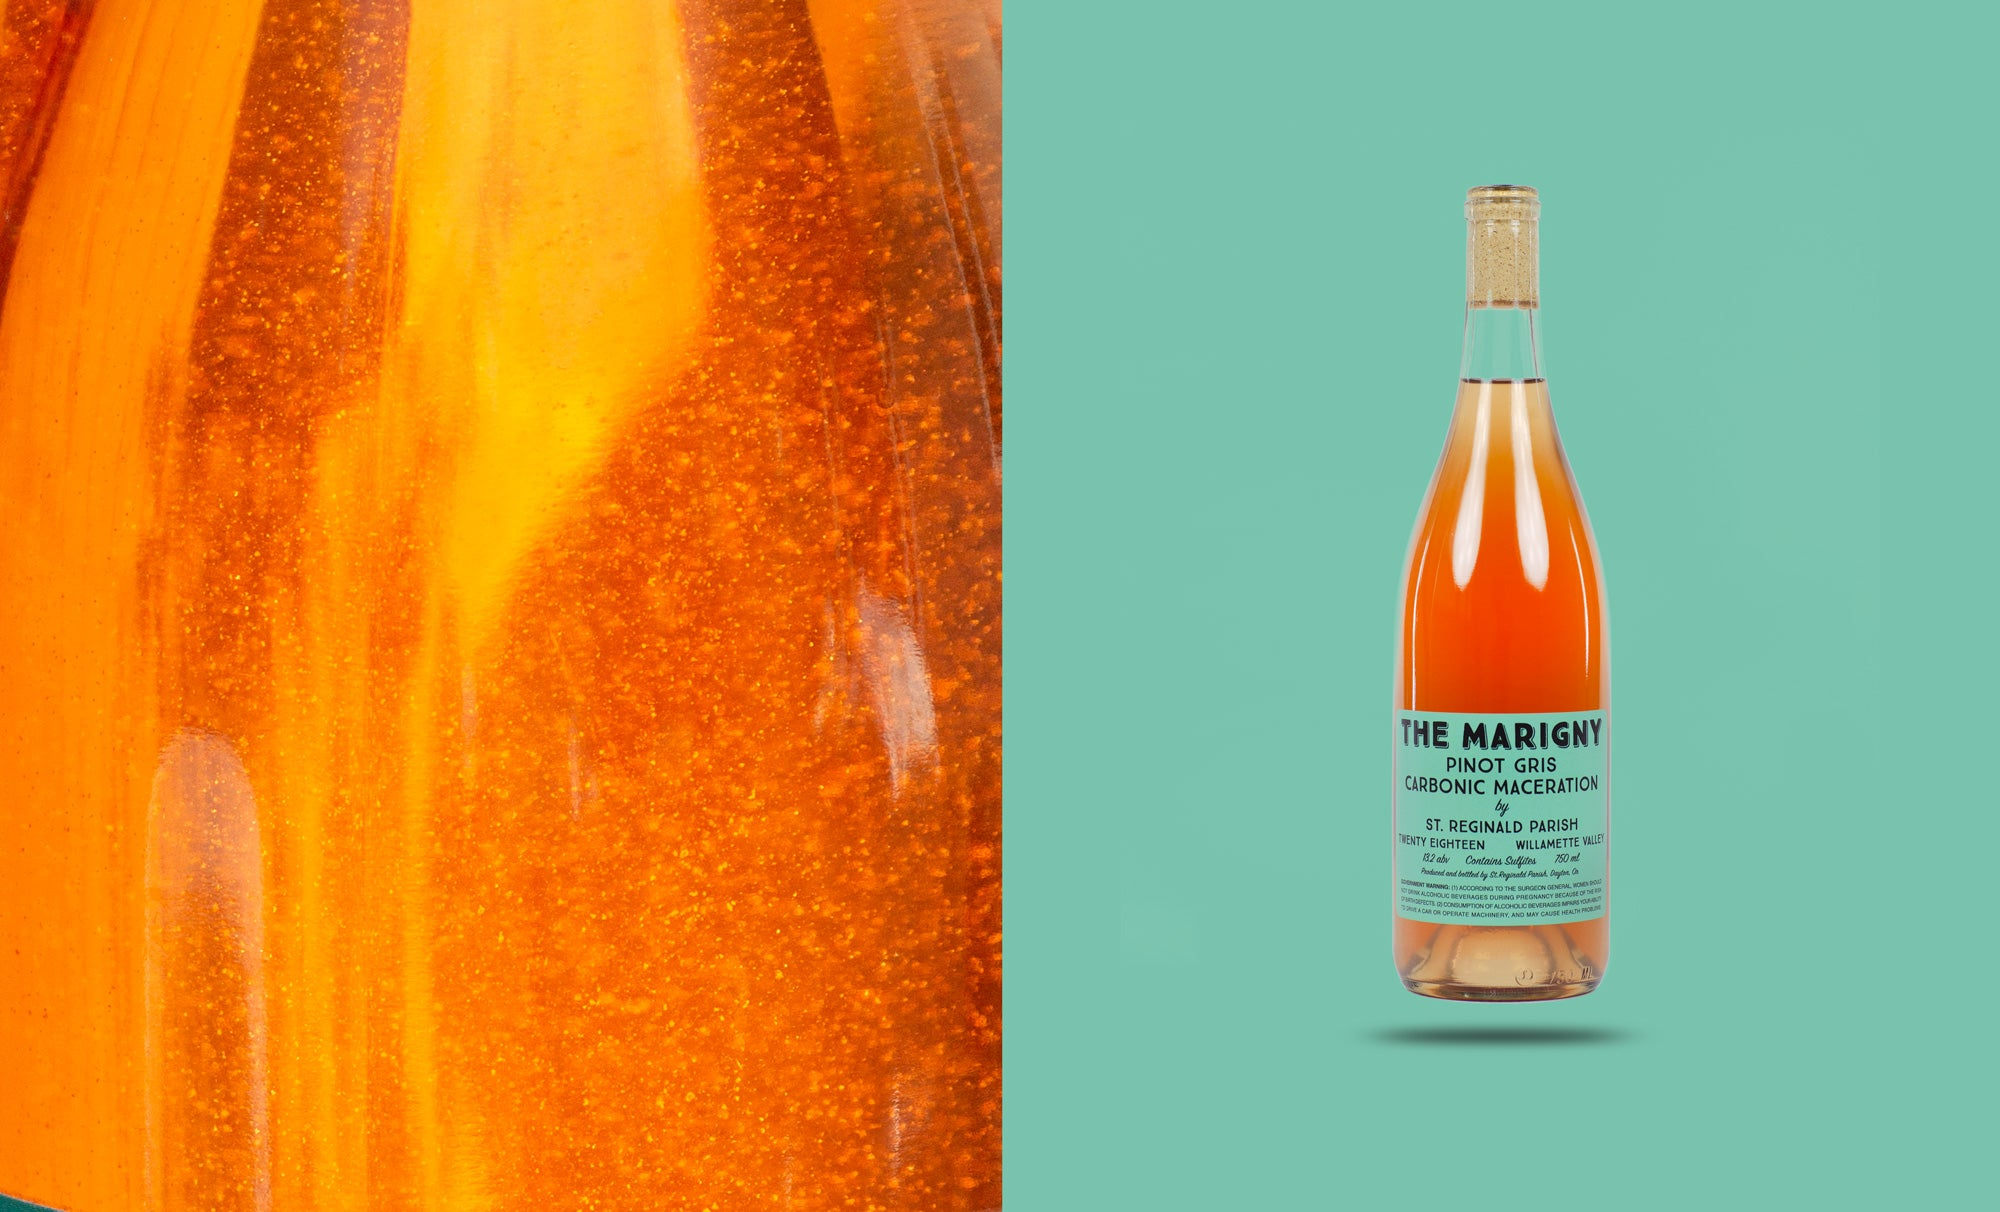 The Marigny Pinot Gris Carbonic Maceration